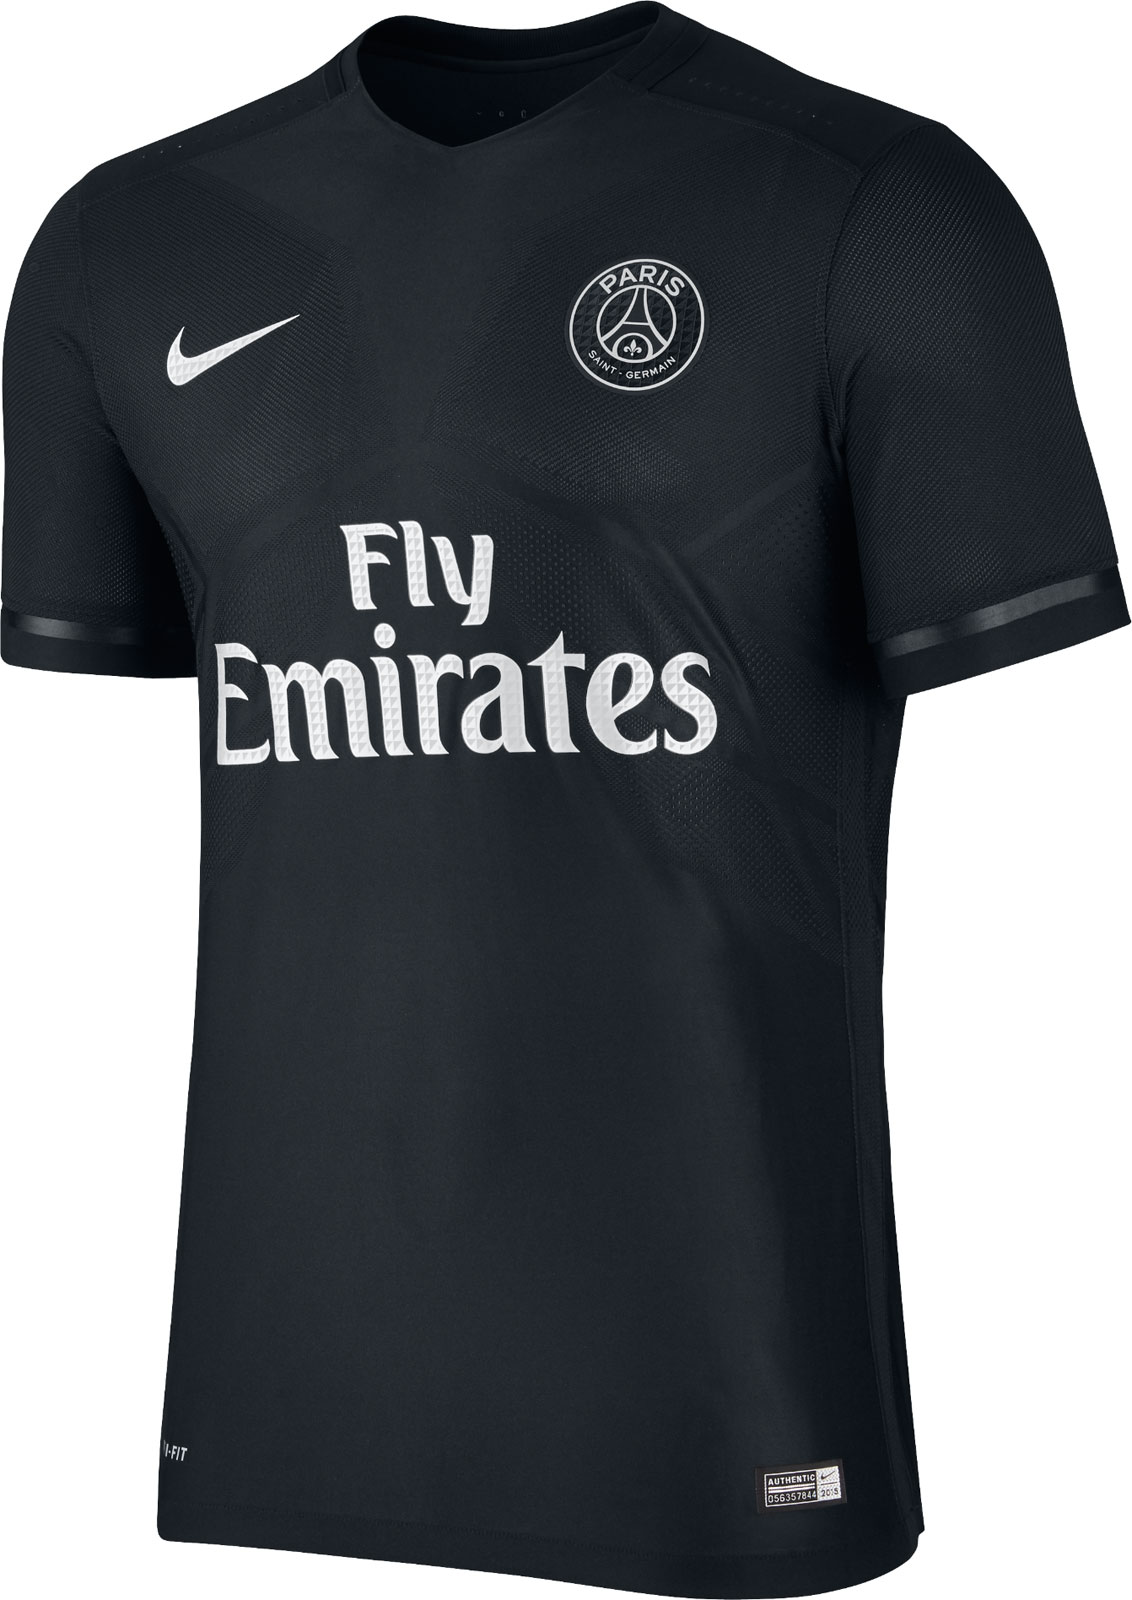 PSG 15-16 CHAMPIONS LEAGUE HOME JERSEY. This is the new ... faa429d76